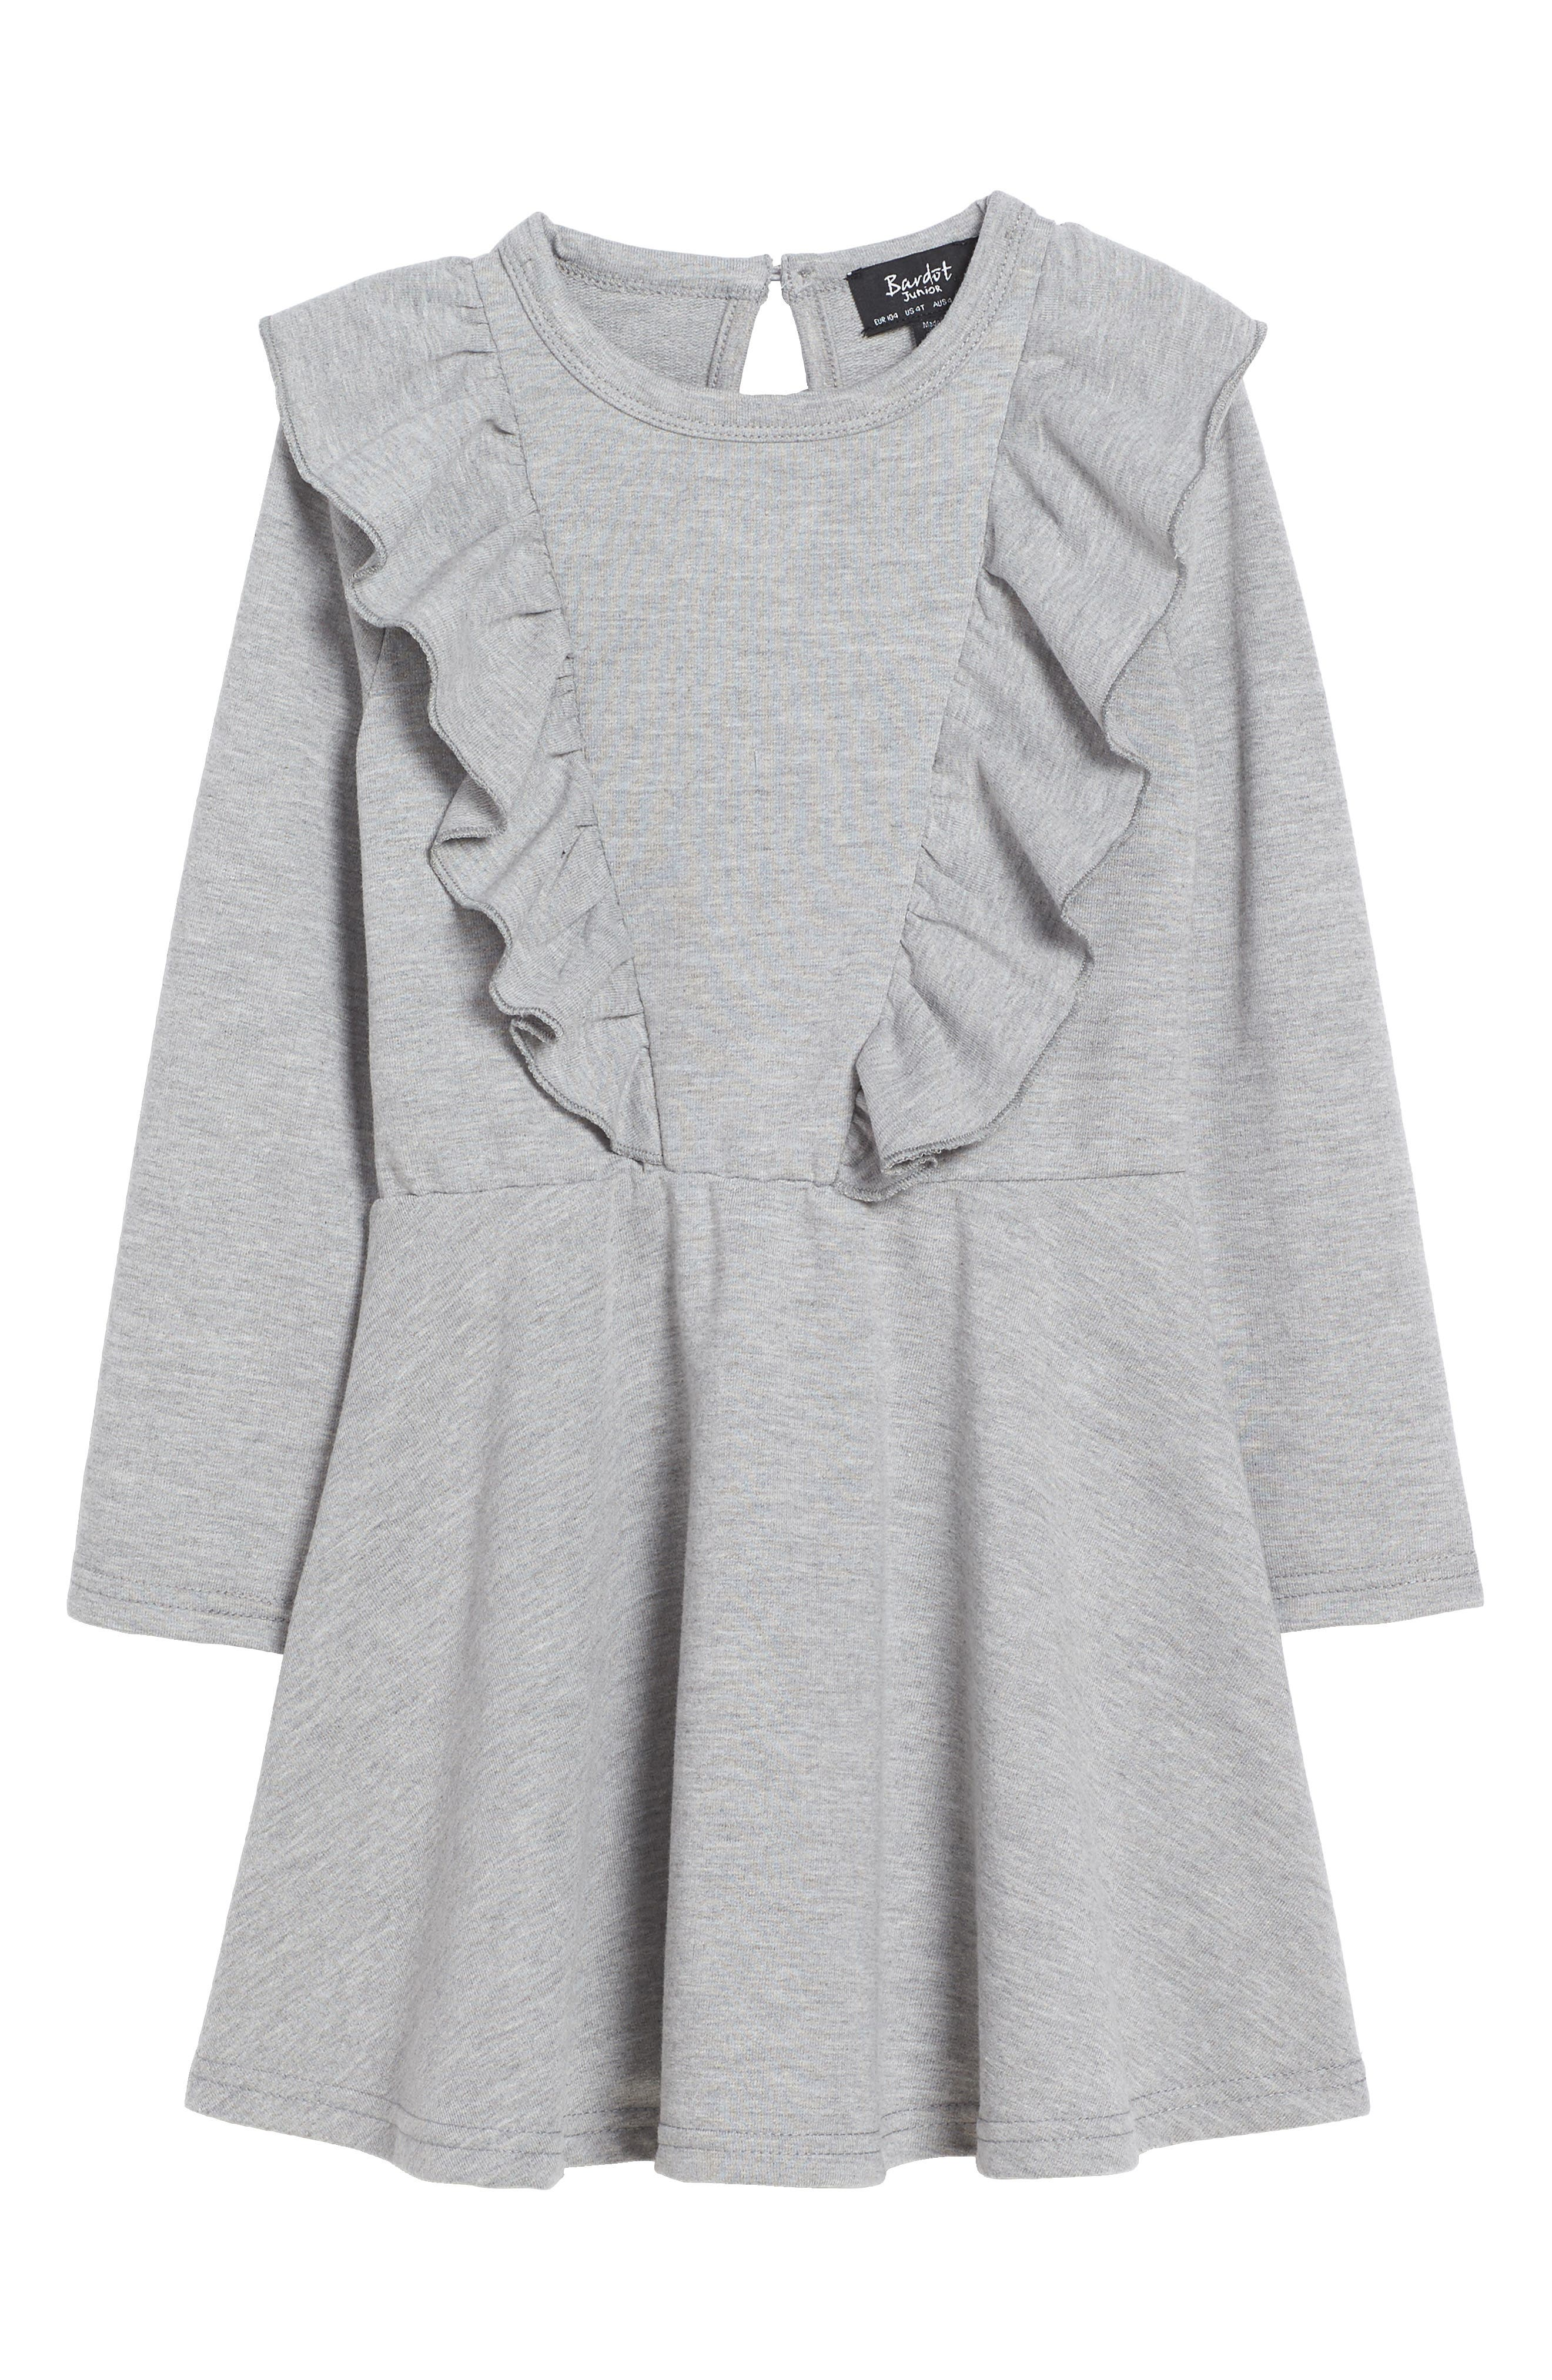 Frill of It Ruffle Dress,                         Main,                         color, Grey Marble